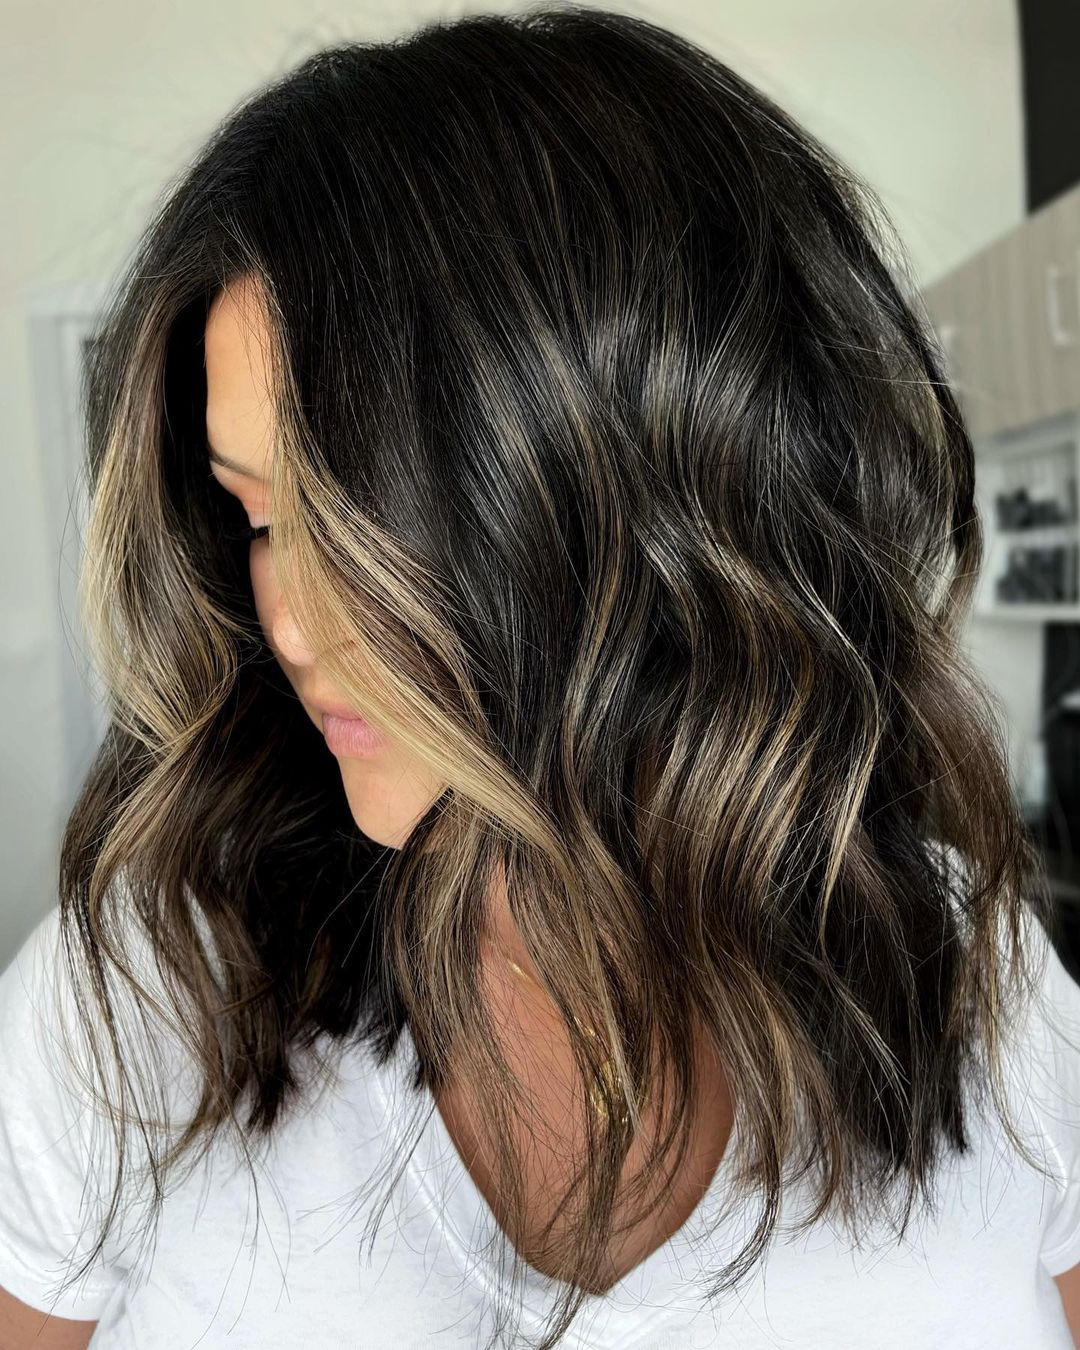 Black Hair with Partial Blonde Balayage